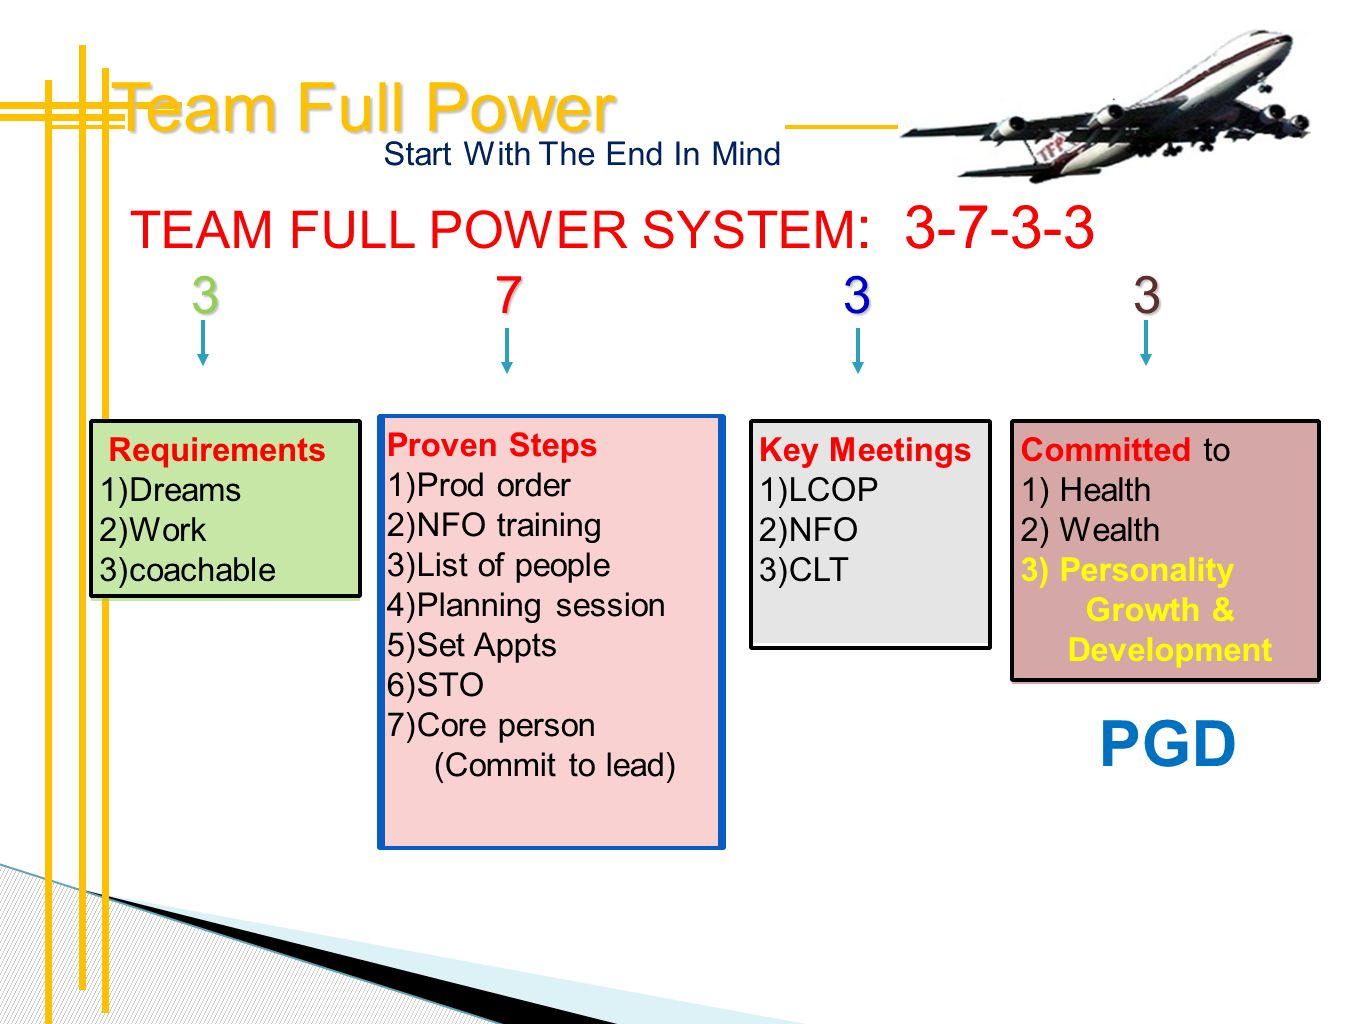 Team Full Power PGD 3 7 3 3 TEAM FULL POWER SYSTEM: 3-7-3-3